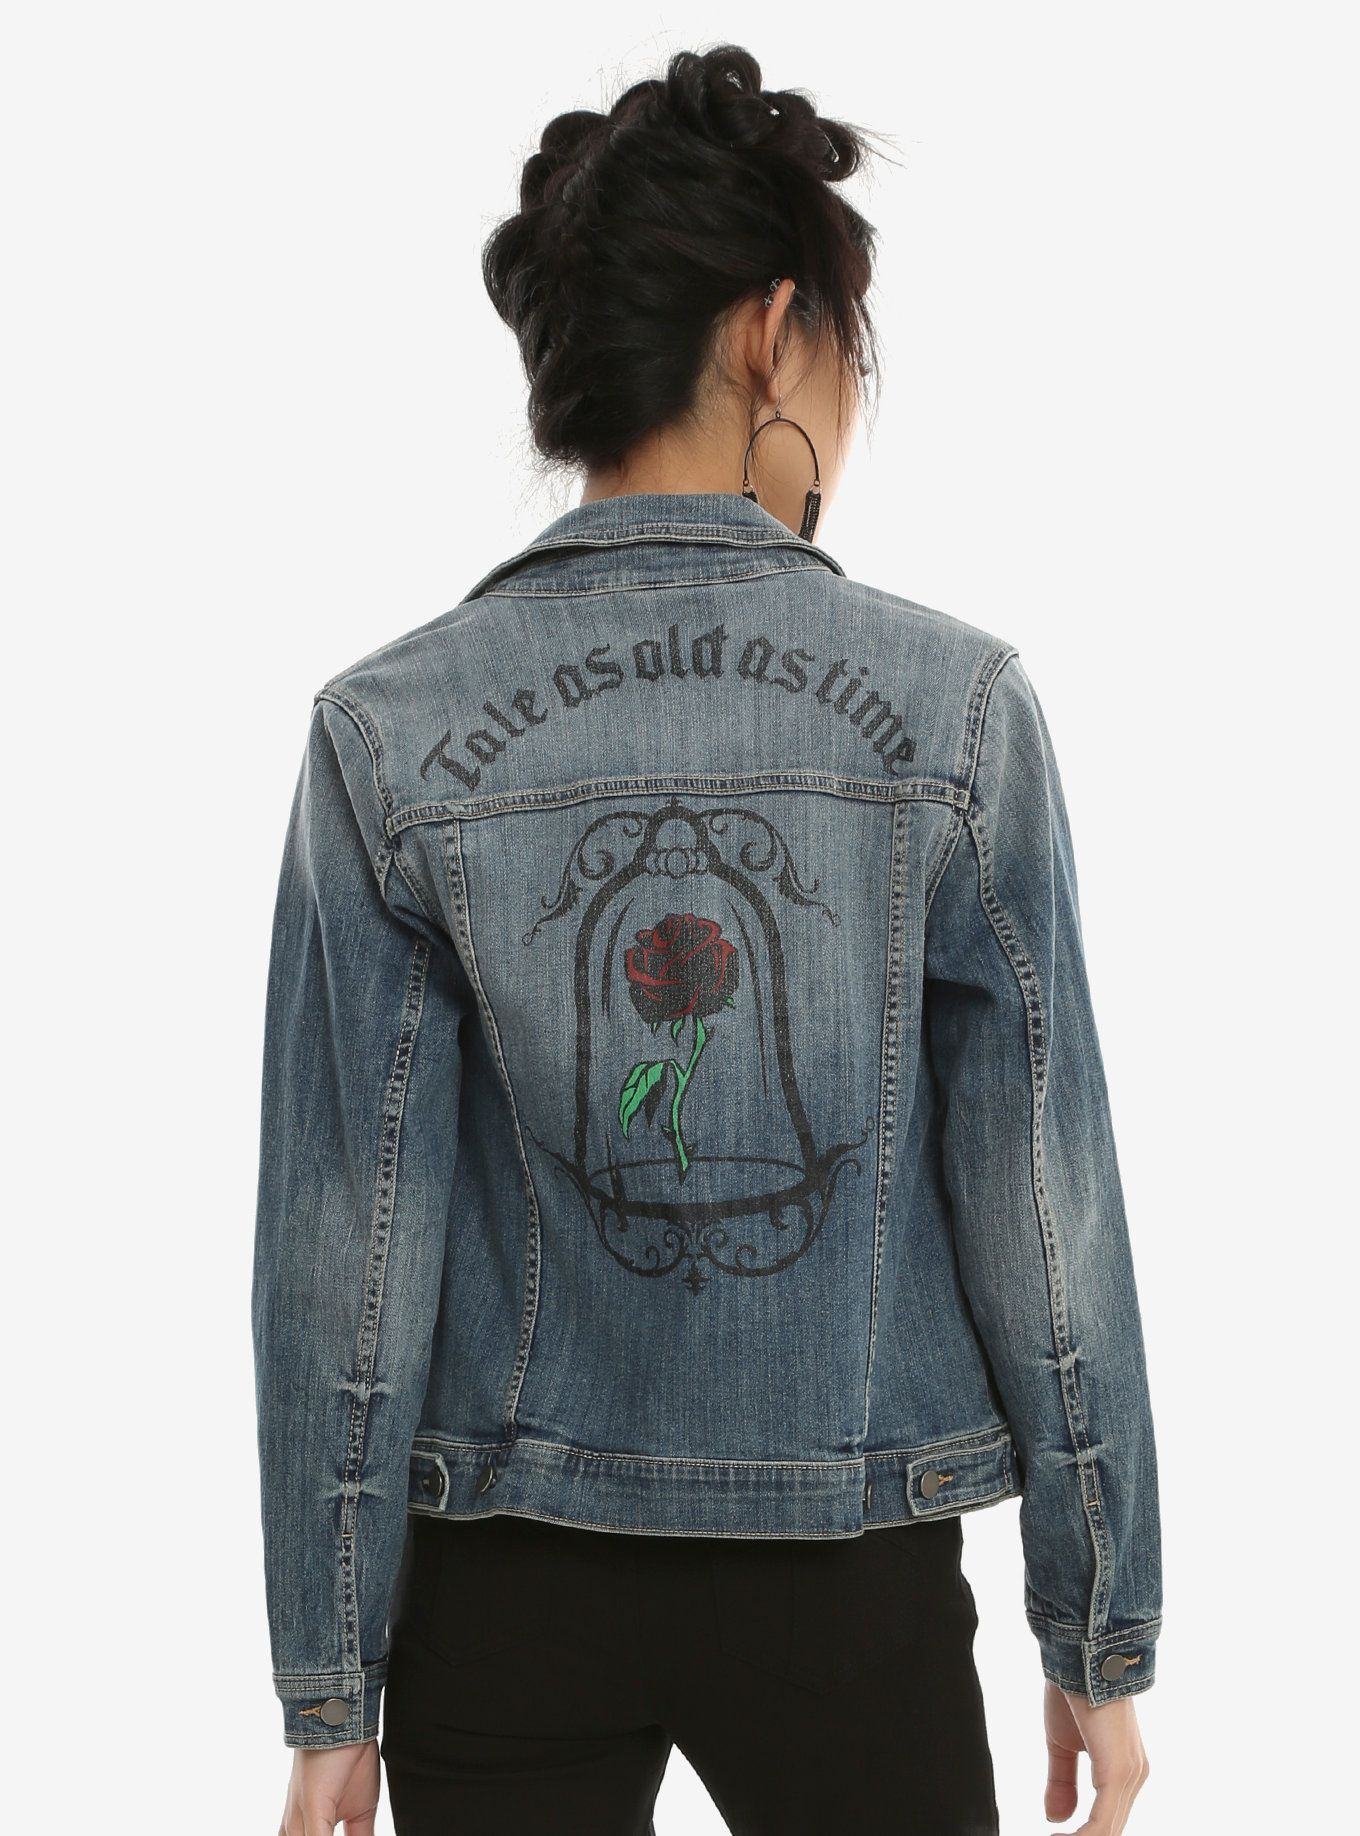 The Beauty And The Beast Denim Jacket Is A Tale As Old As Time Girls Denim Jacket Denim Jacket Girls Denim [ 1836 x 1360 Pixel ]